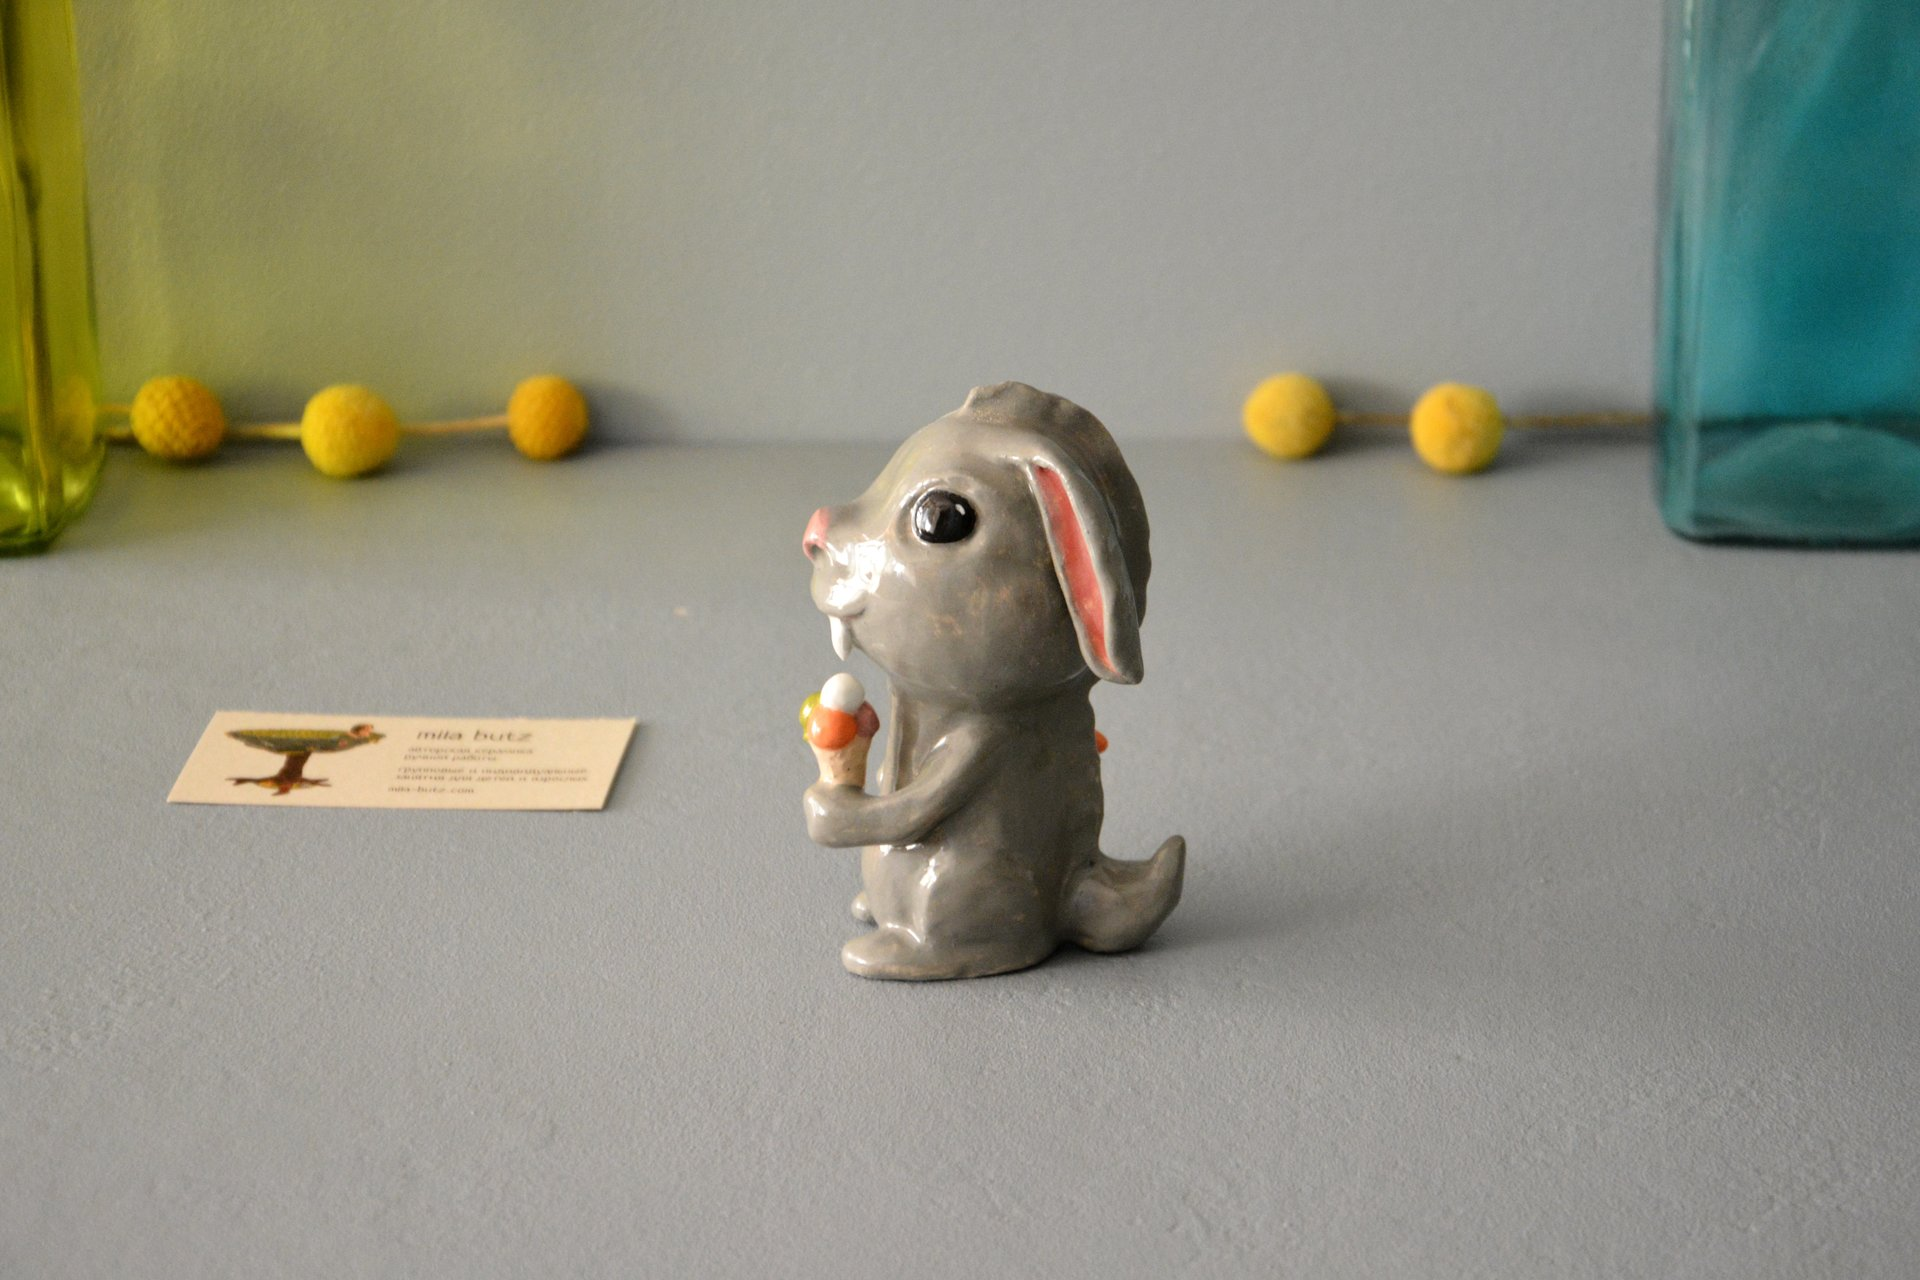 Clay figurine Saber-toothed Rabbit, height - 12 cm, photo 4 of 5.